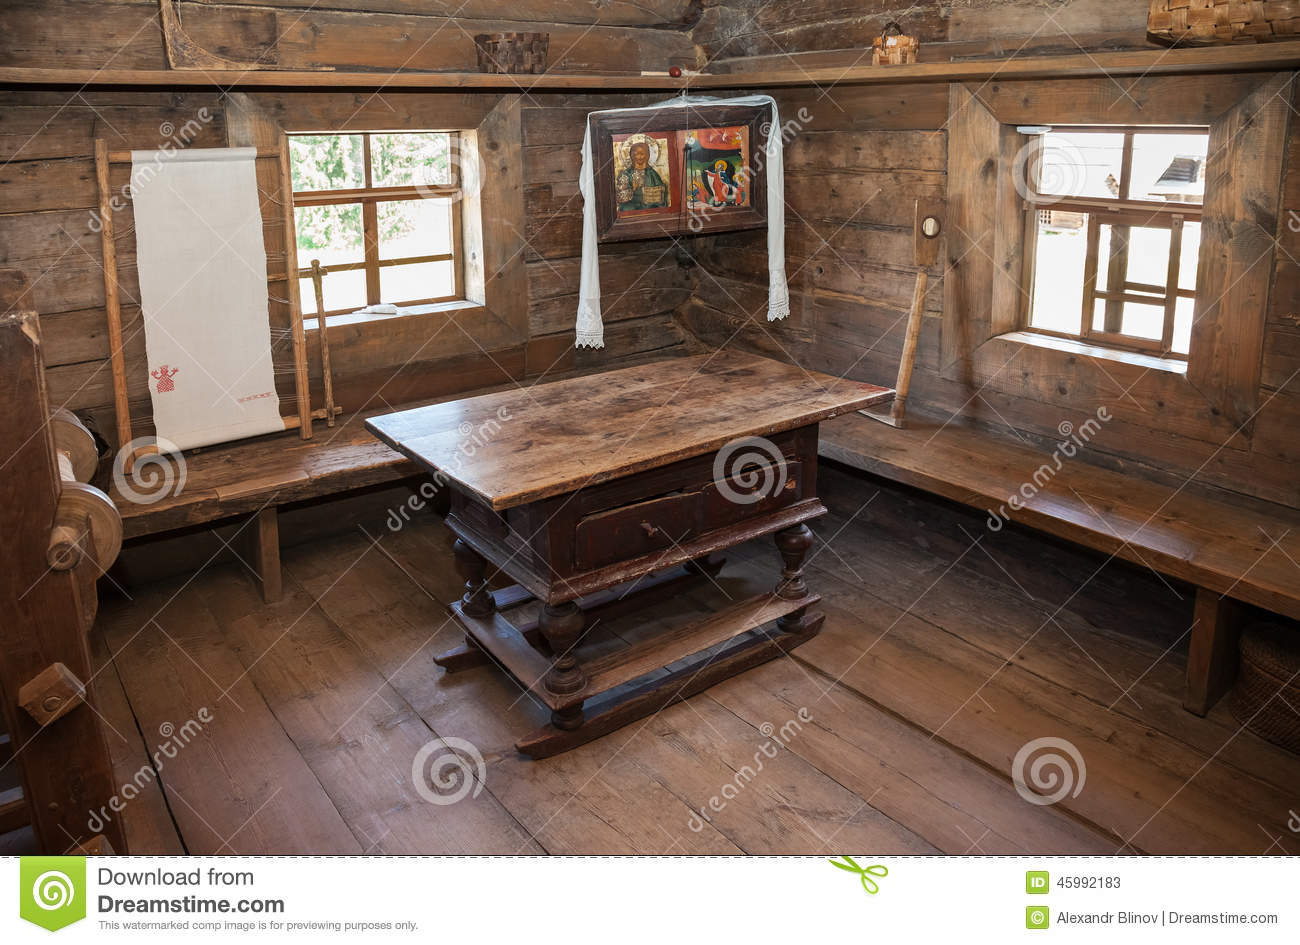 Int rieur de vieille maison en bois rurale photo stock - Vieille table en bois ...